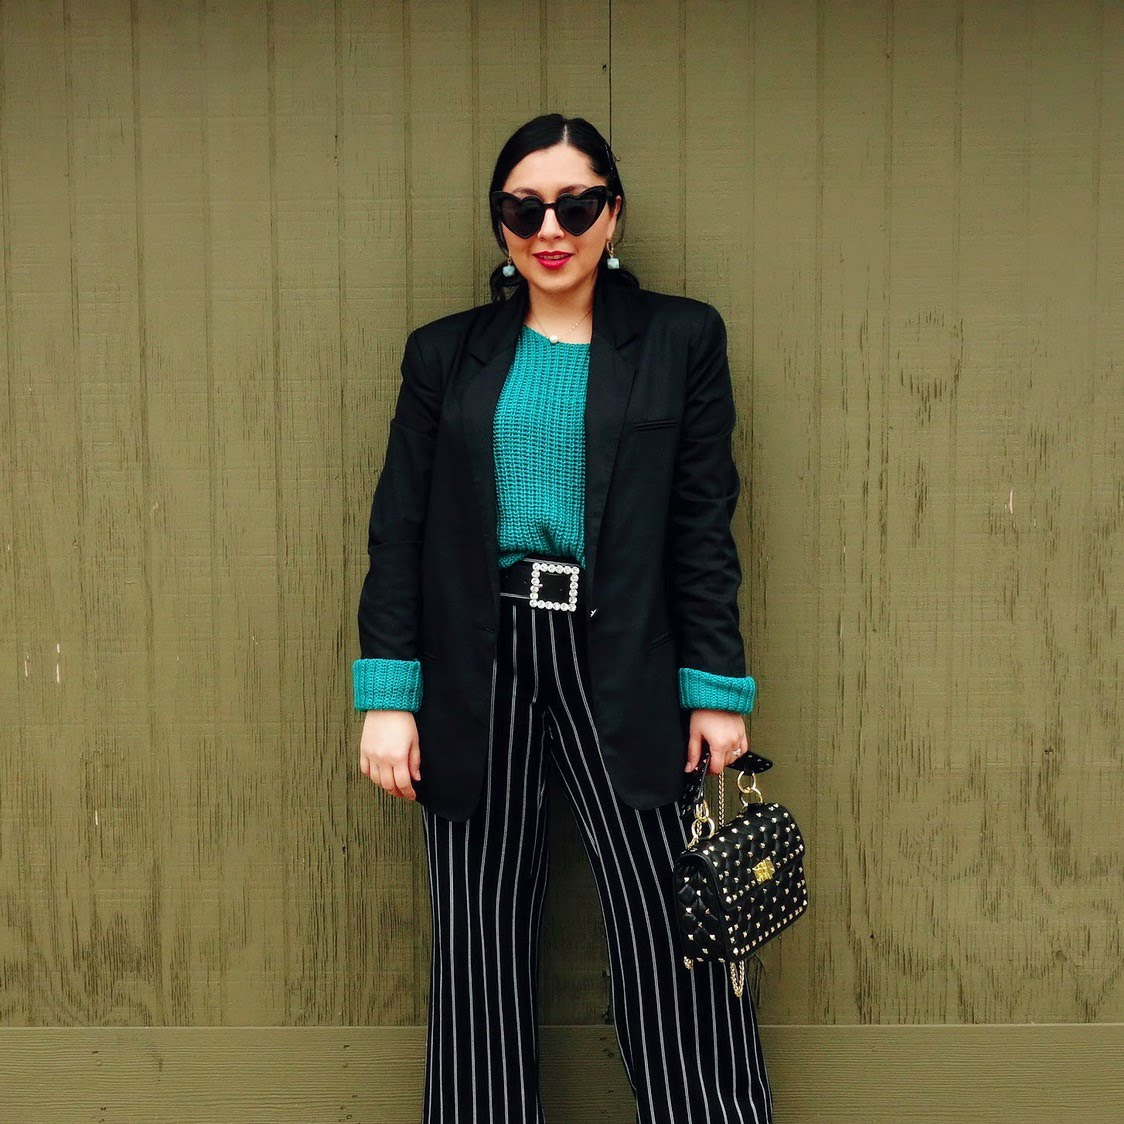 Green Sweater, Emerald Green Sweater outfit, Stripped Pants and Green Sweater Outfit, Embellished Belt